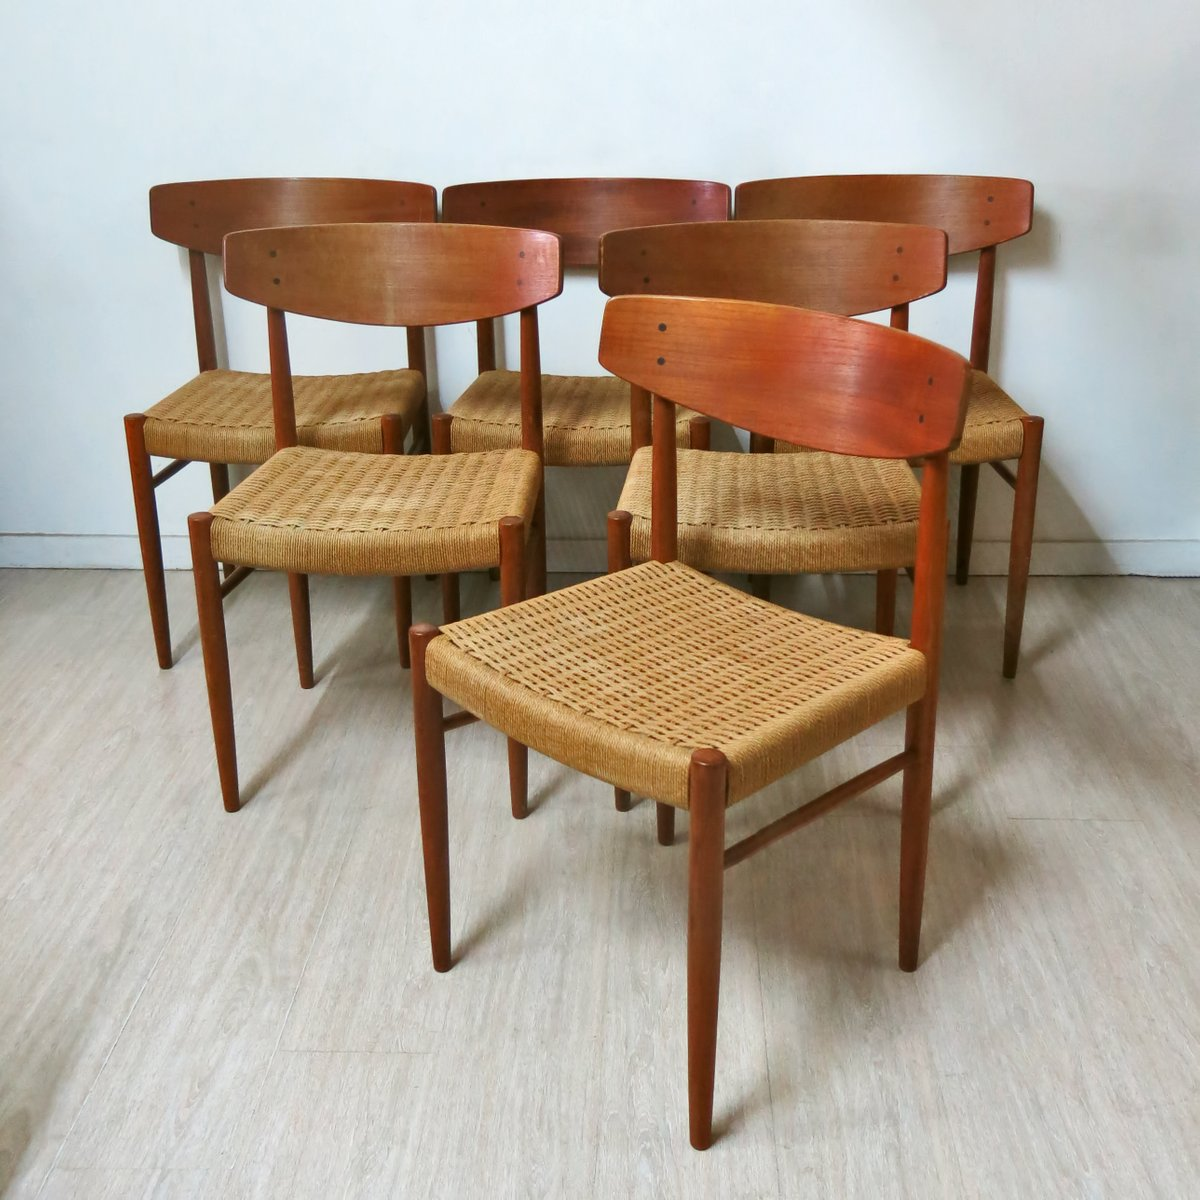 Vintage Danish Dining Chairs, 1960s, Set of 6 for sale at ...